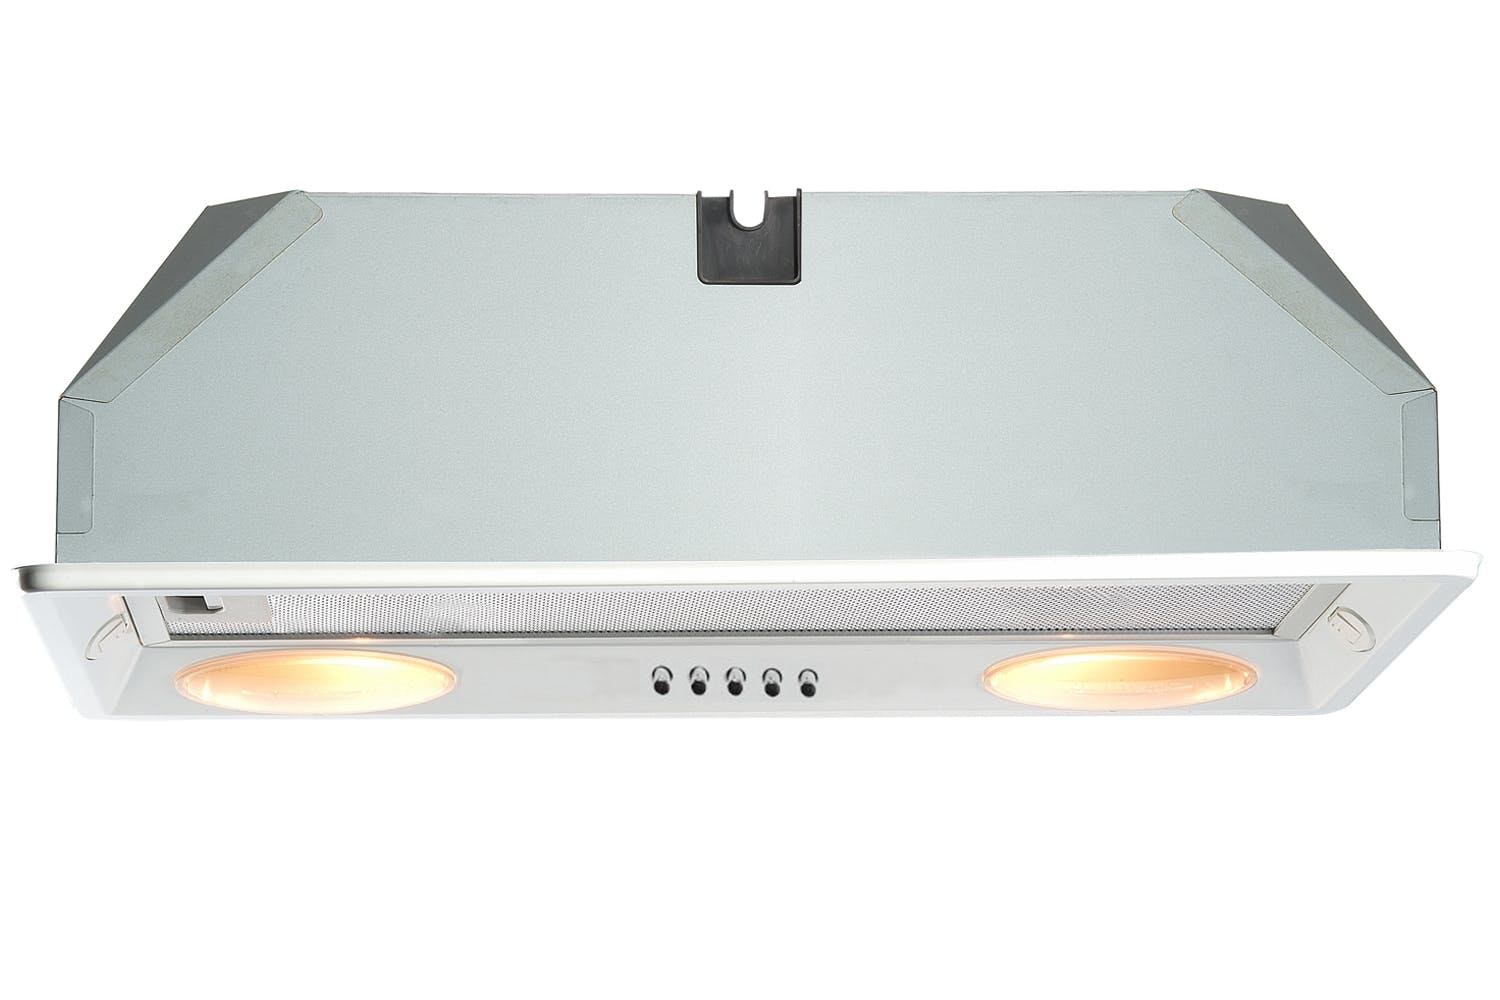 AirStream 52cm Canopy Extractor Hood | F06B